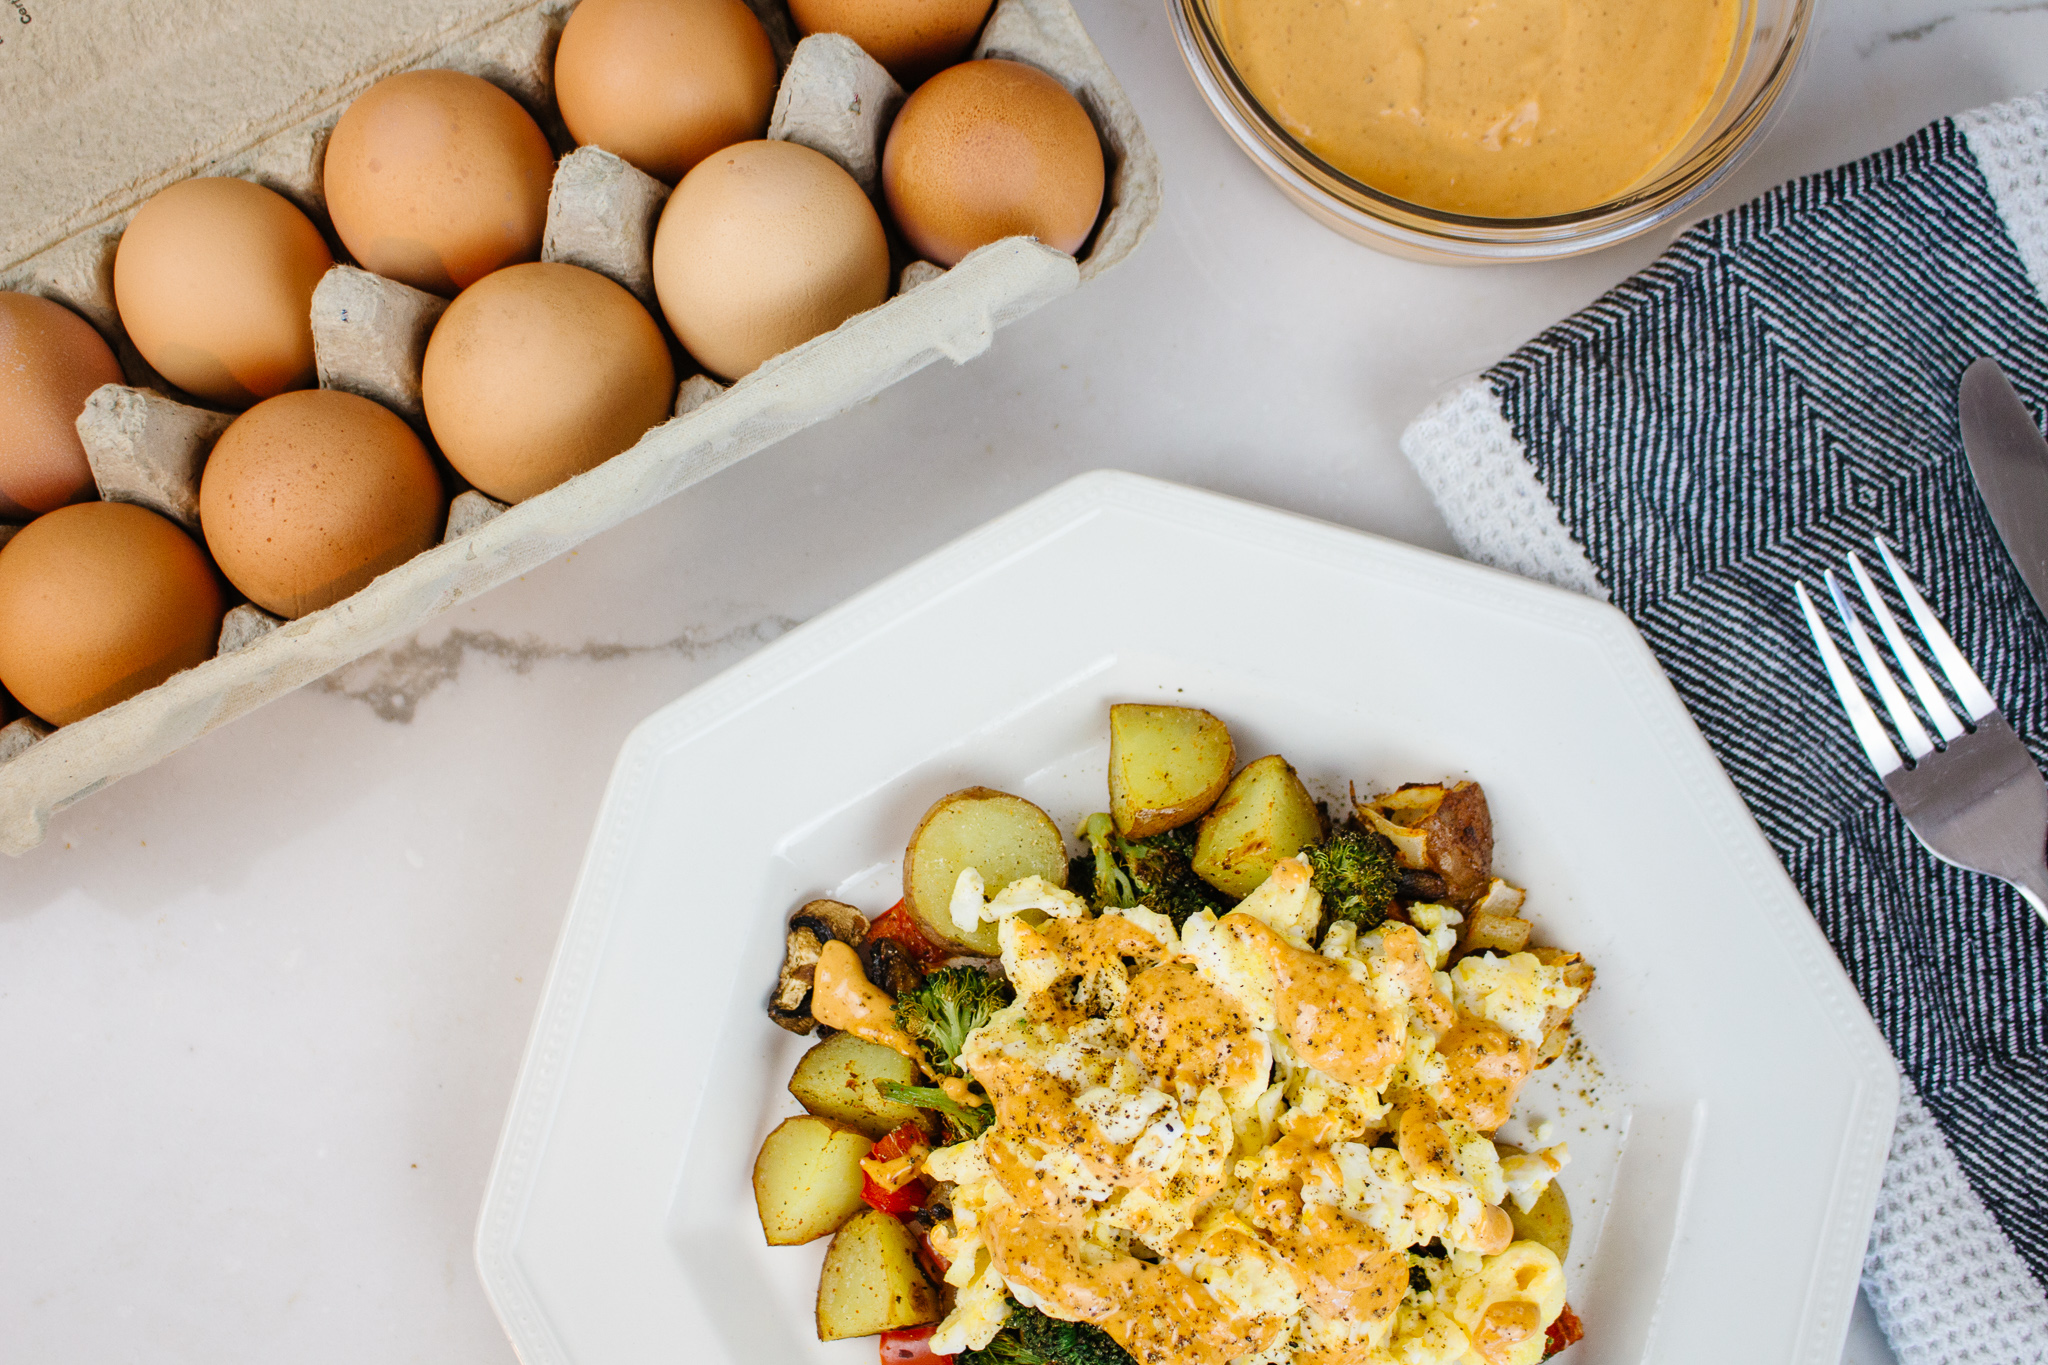 Easy and tasty veggie breakfast hash. Perfect for family weekend breakfasts. You can easily adjust the heat of the chipotle aioli to suit your tastes.